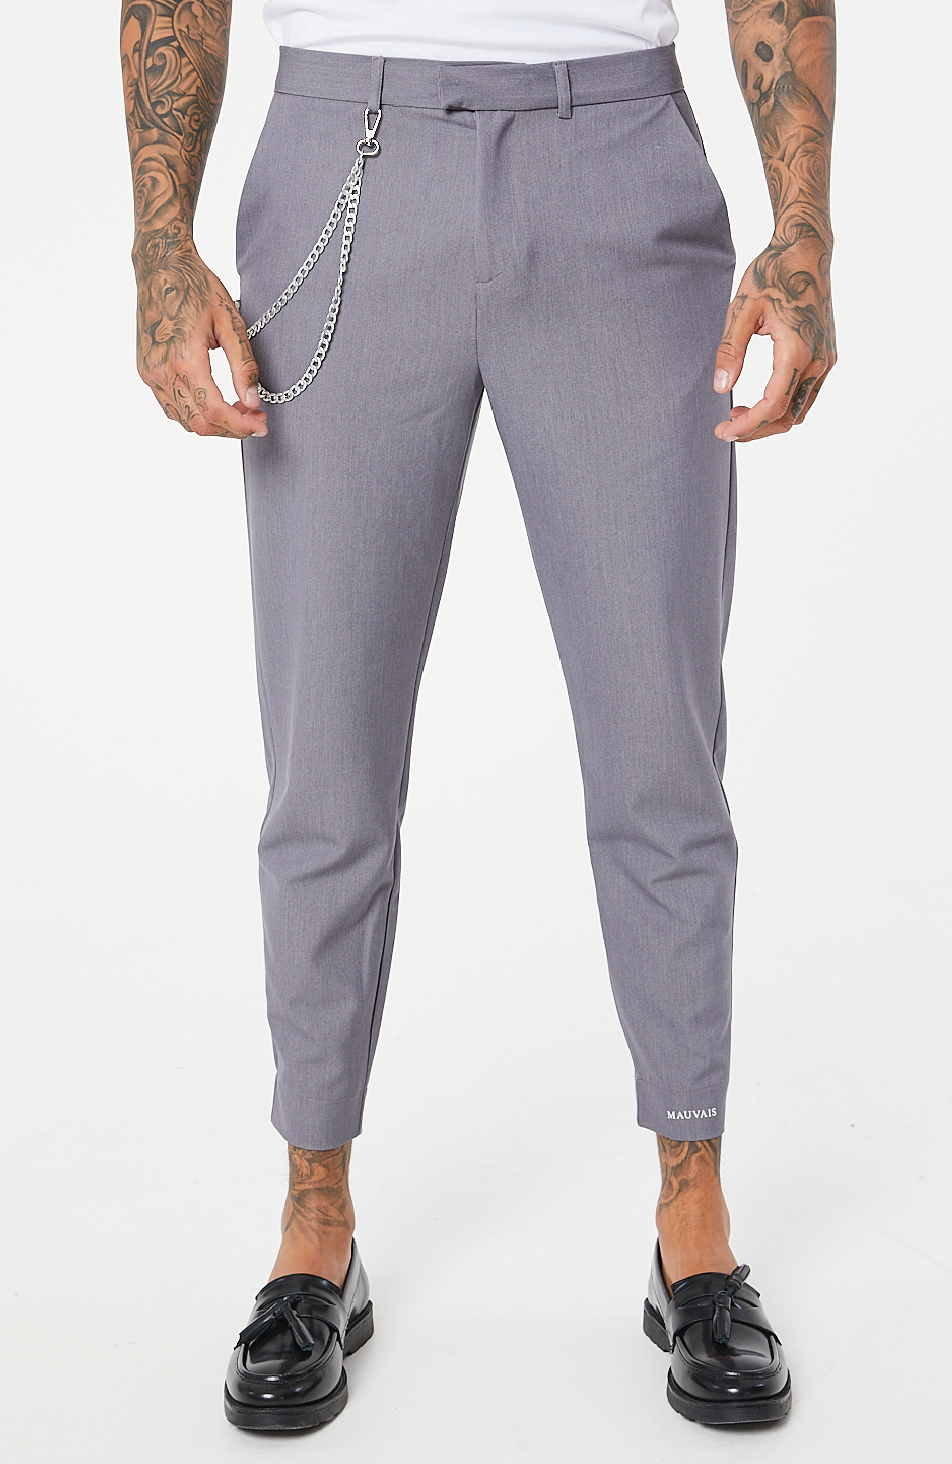 MAUVAIS Grey Cropped Trousers with Detachable Silver Chain